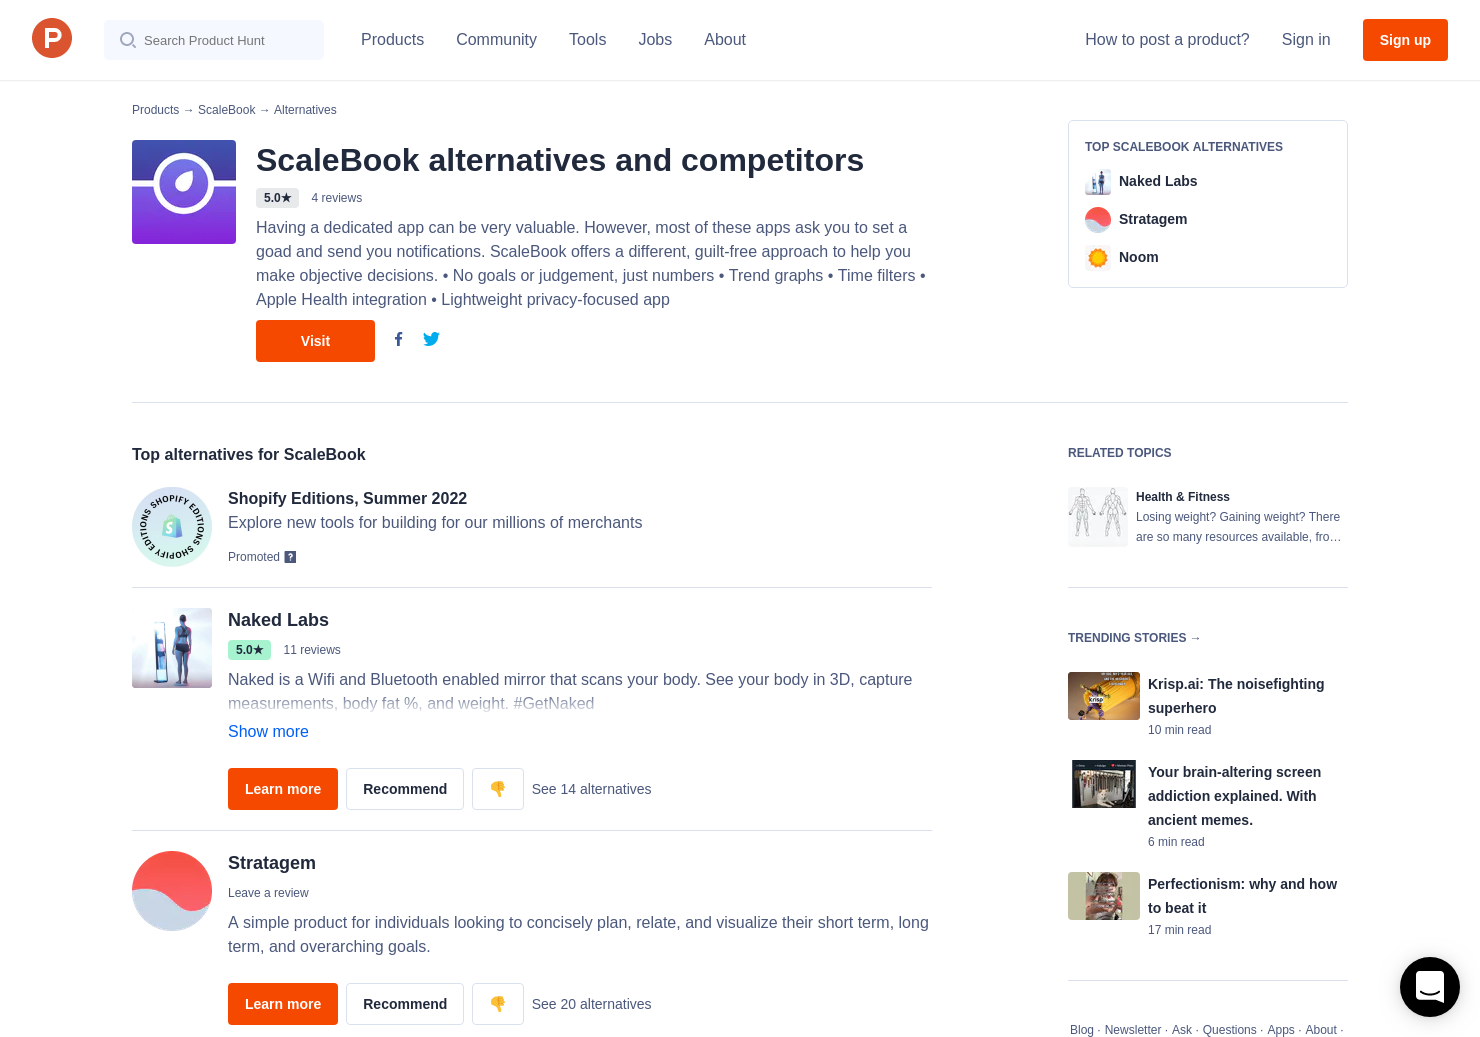 14 Alternatives to ScaleBook | Product Hunt